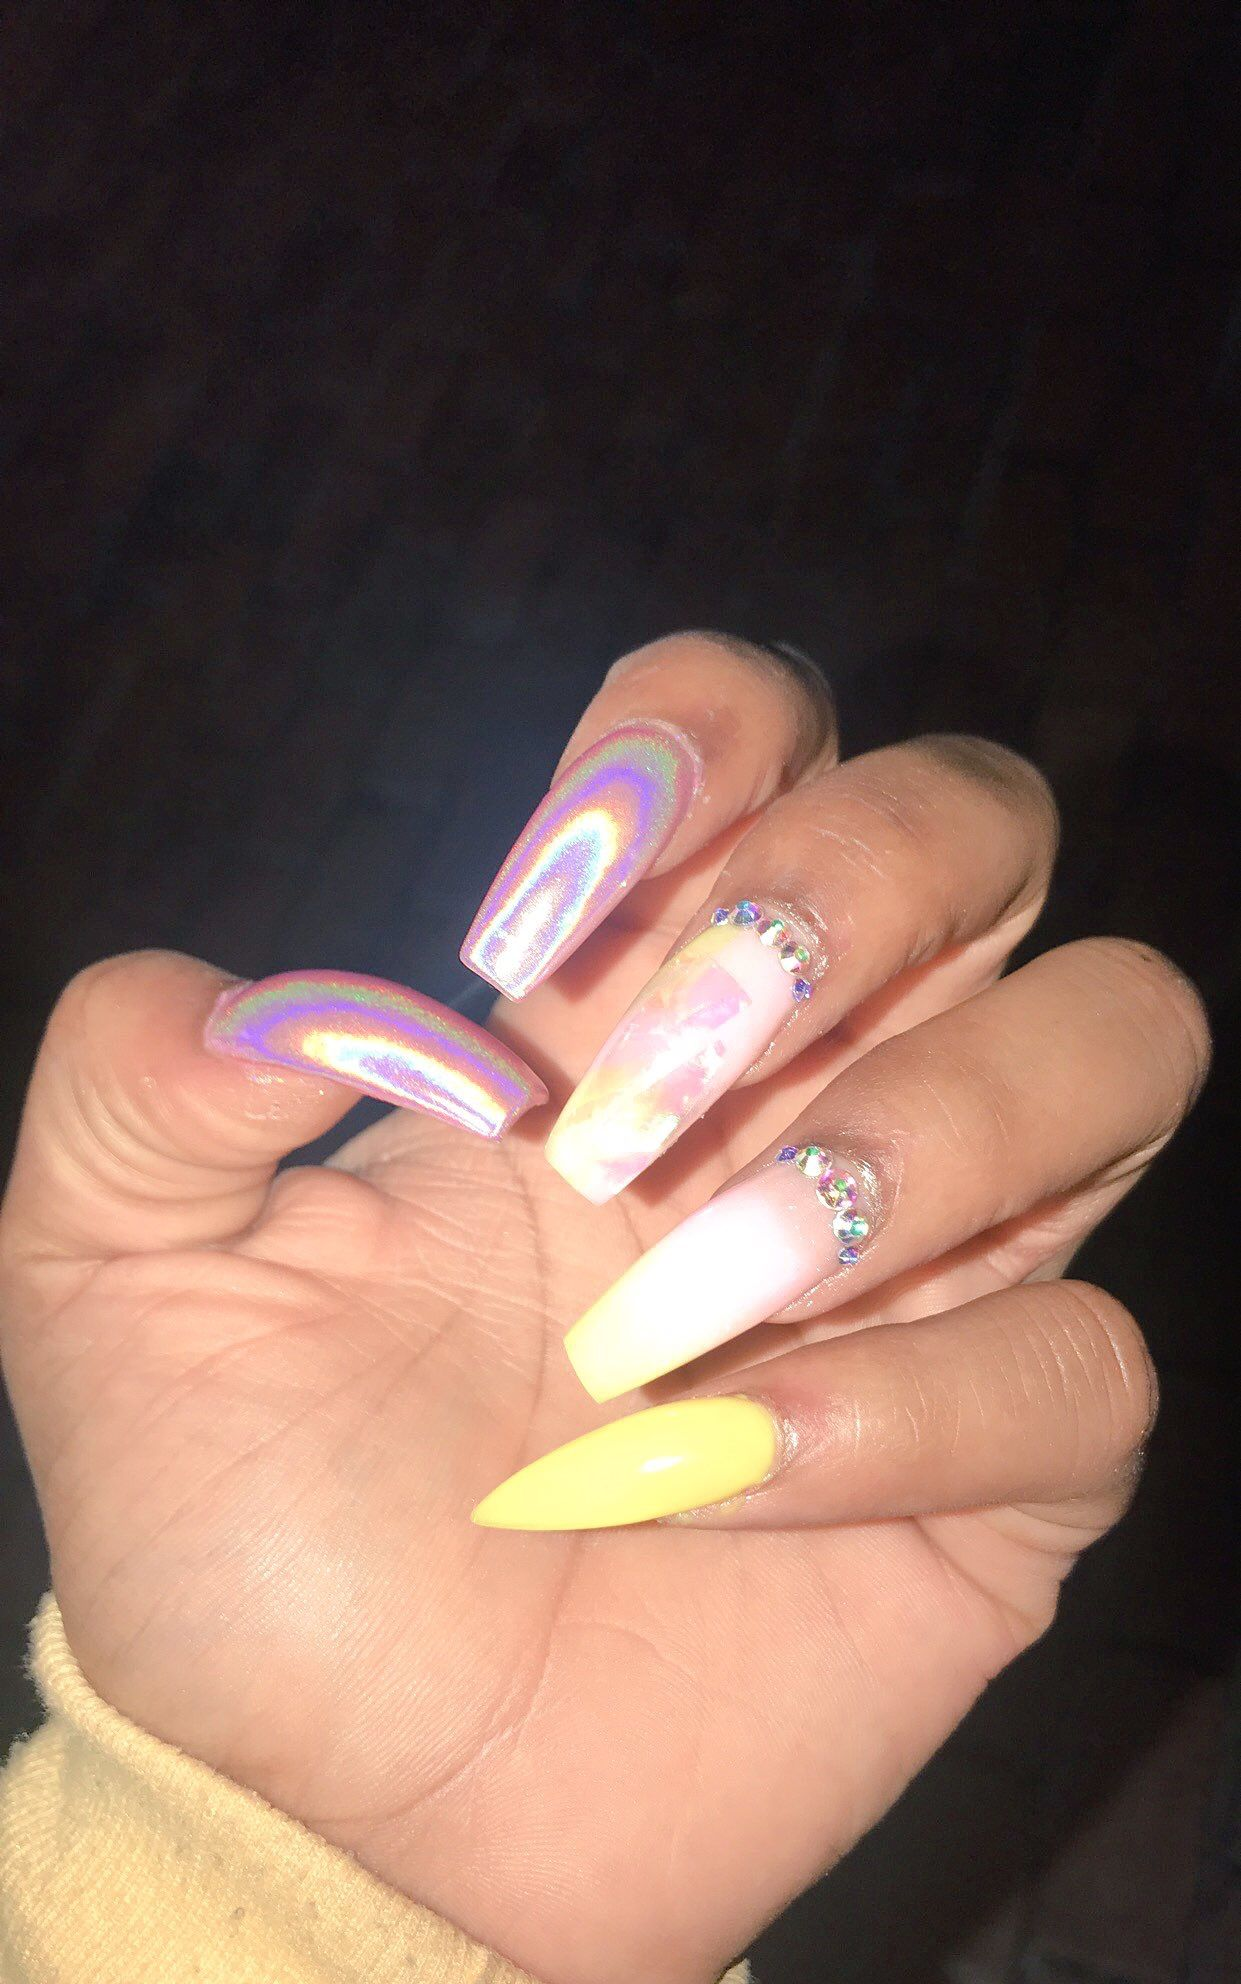 Pin by Queen Ivy👸🏾 on Nails Slay | Pinterest | Nail inspo, Nail ...